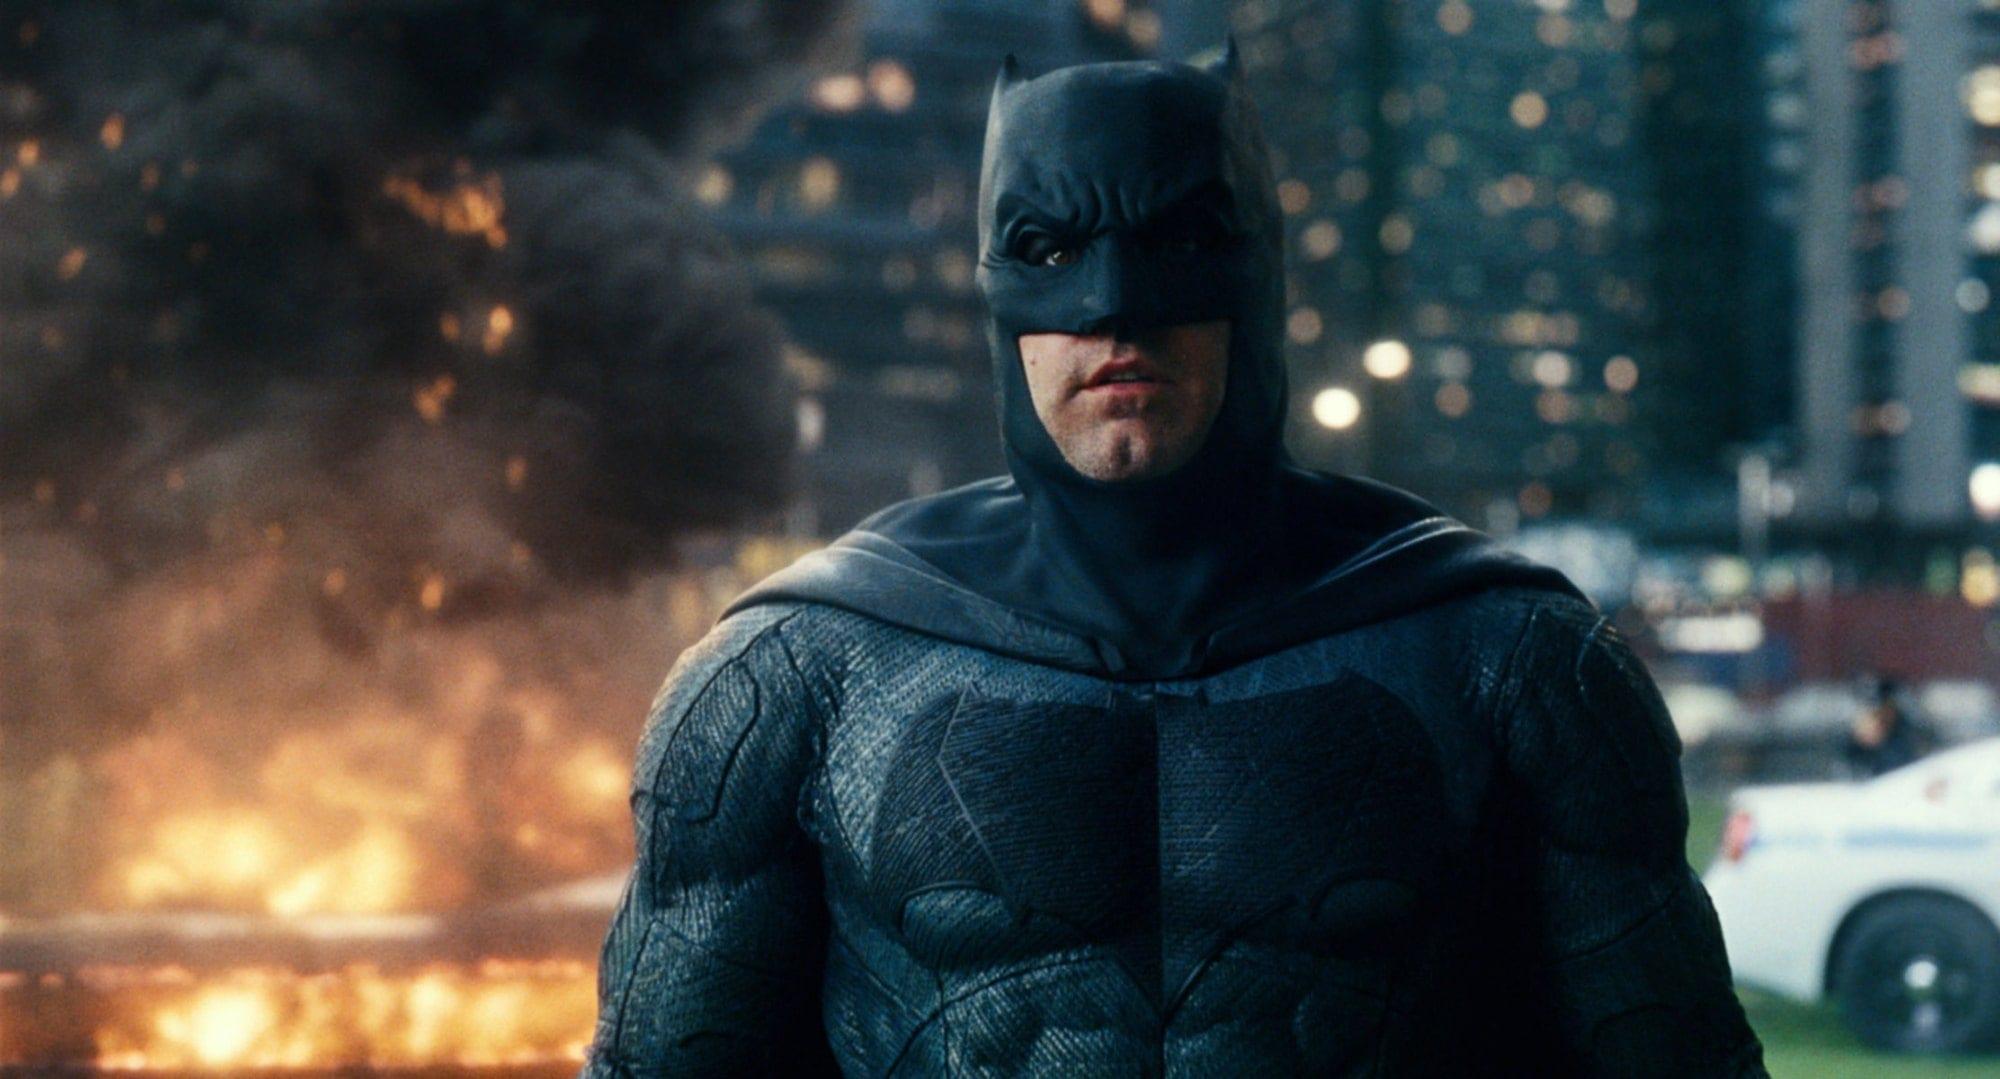 Fans Are Campaigning For Ben Affleck's Batman Movie